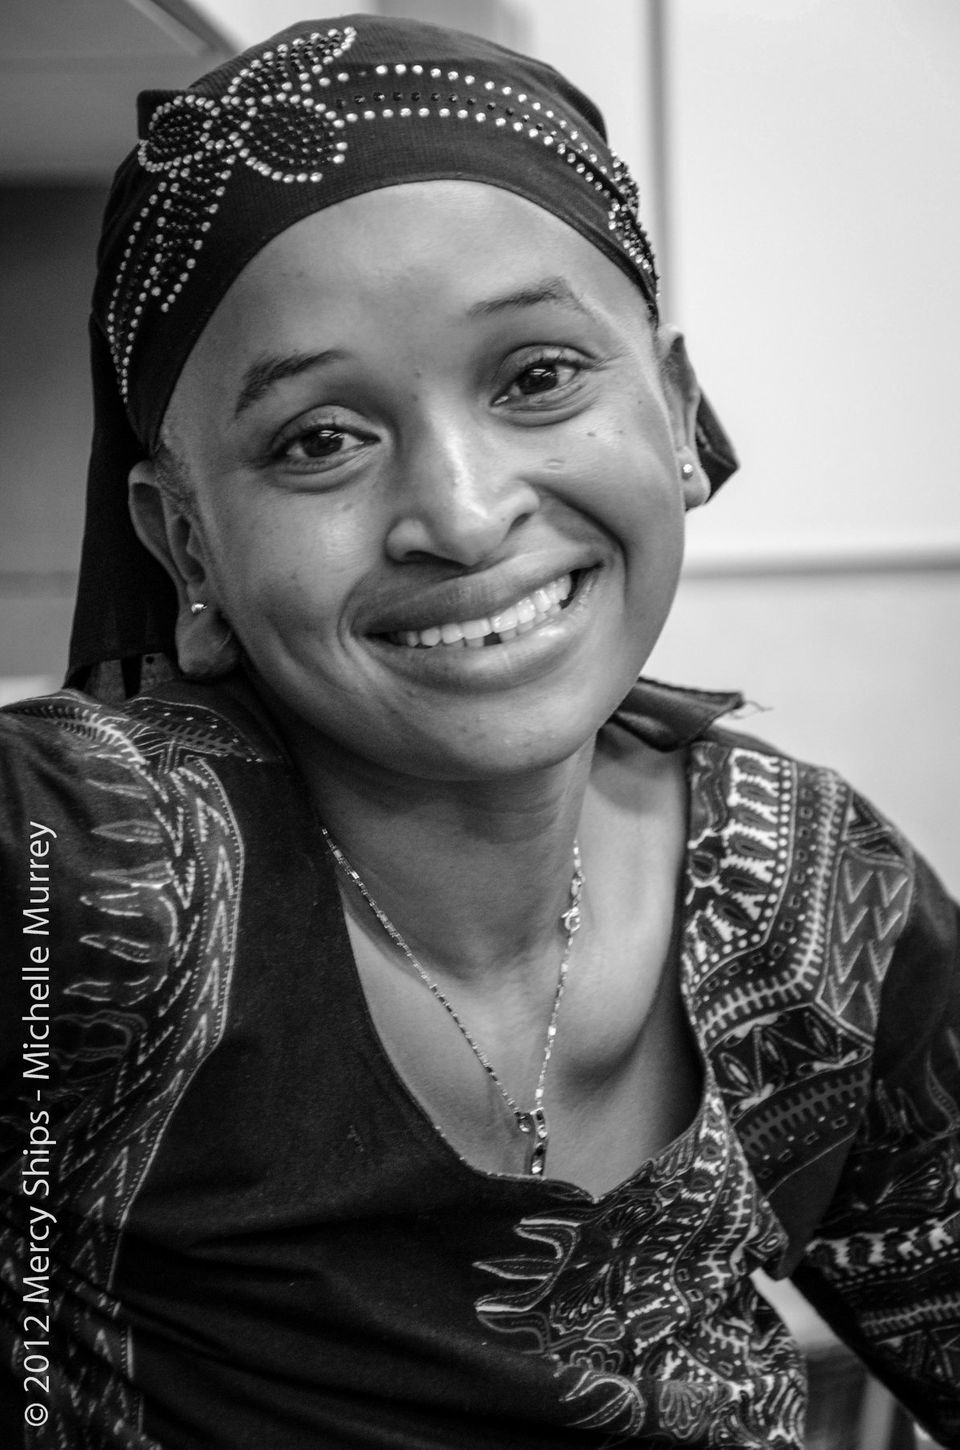 Michelle Murrey, Mercy Ships photographer, took this beautiful portrait of Mariama on the day she was admitted to the Africa